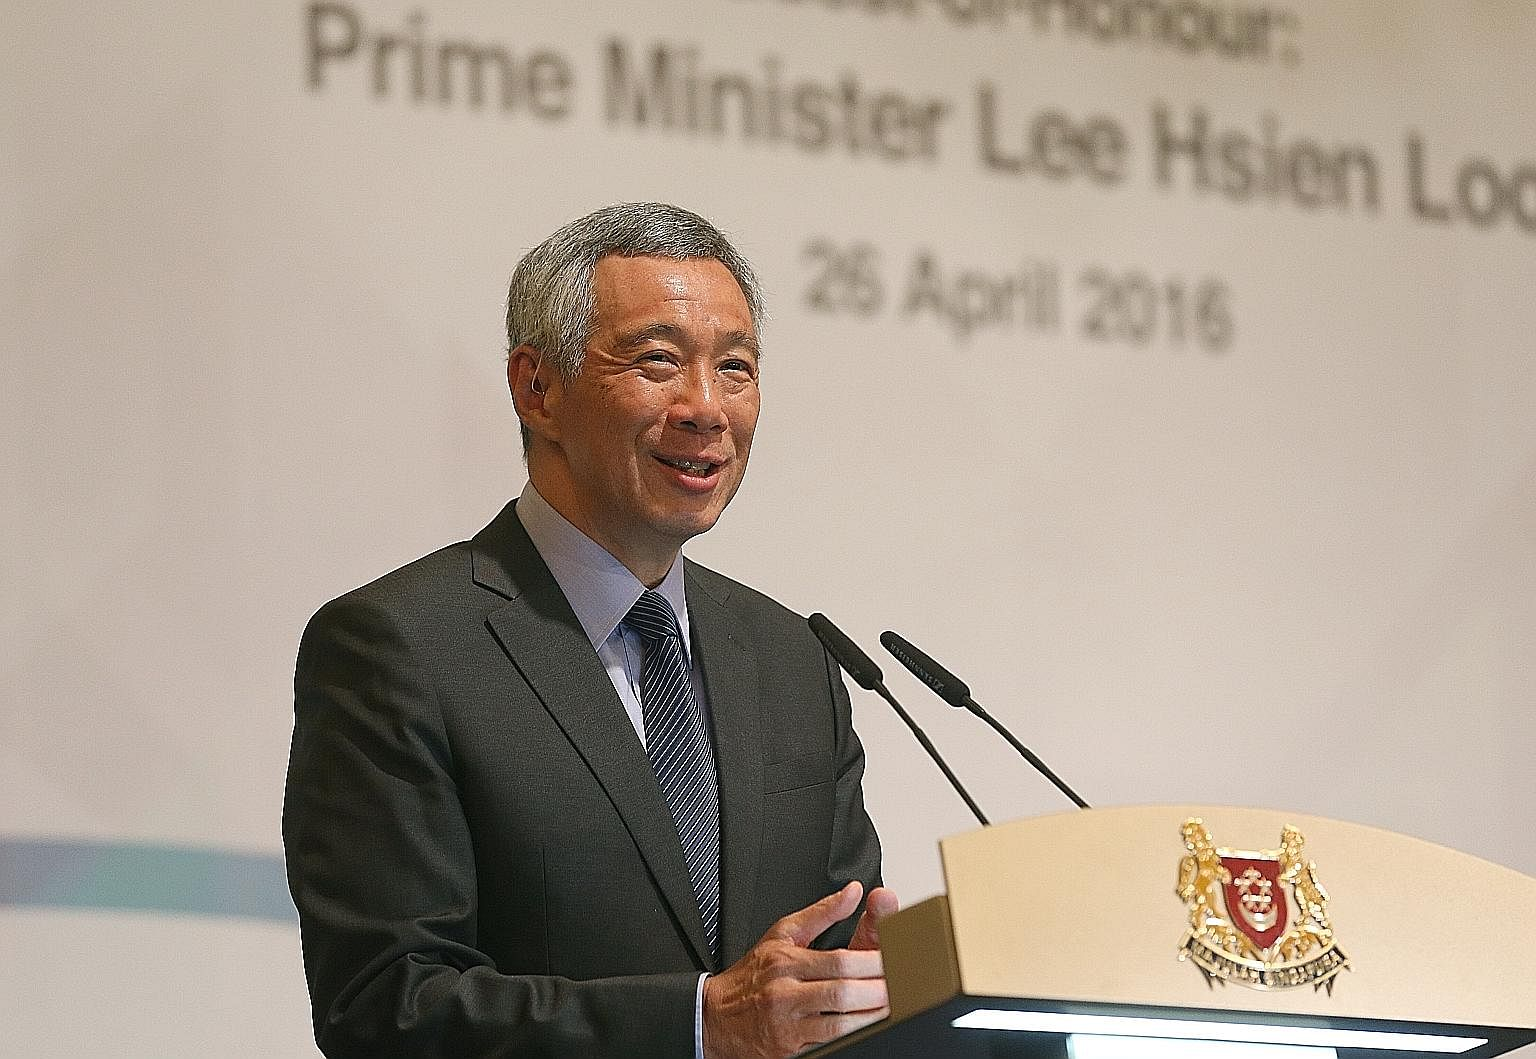 PM Lee says the Singapore system with two clear streams - political leaders on one side and civil servants on the other - has generally worked well, and one reason is that both sides share fundamental values and goals that guide their thinking and mo